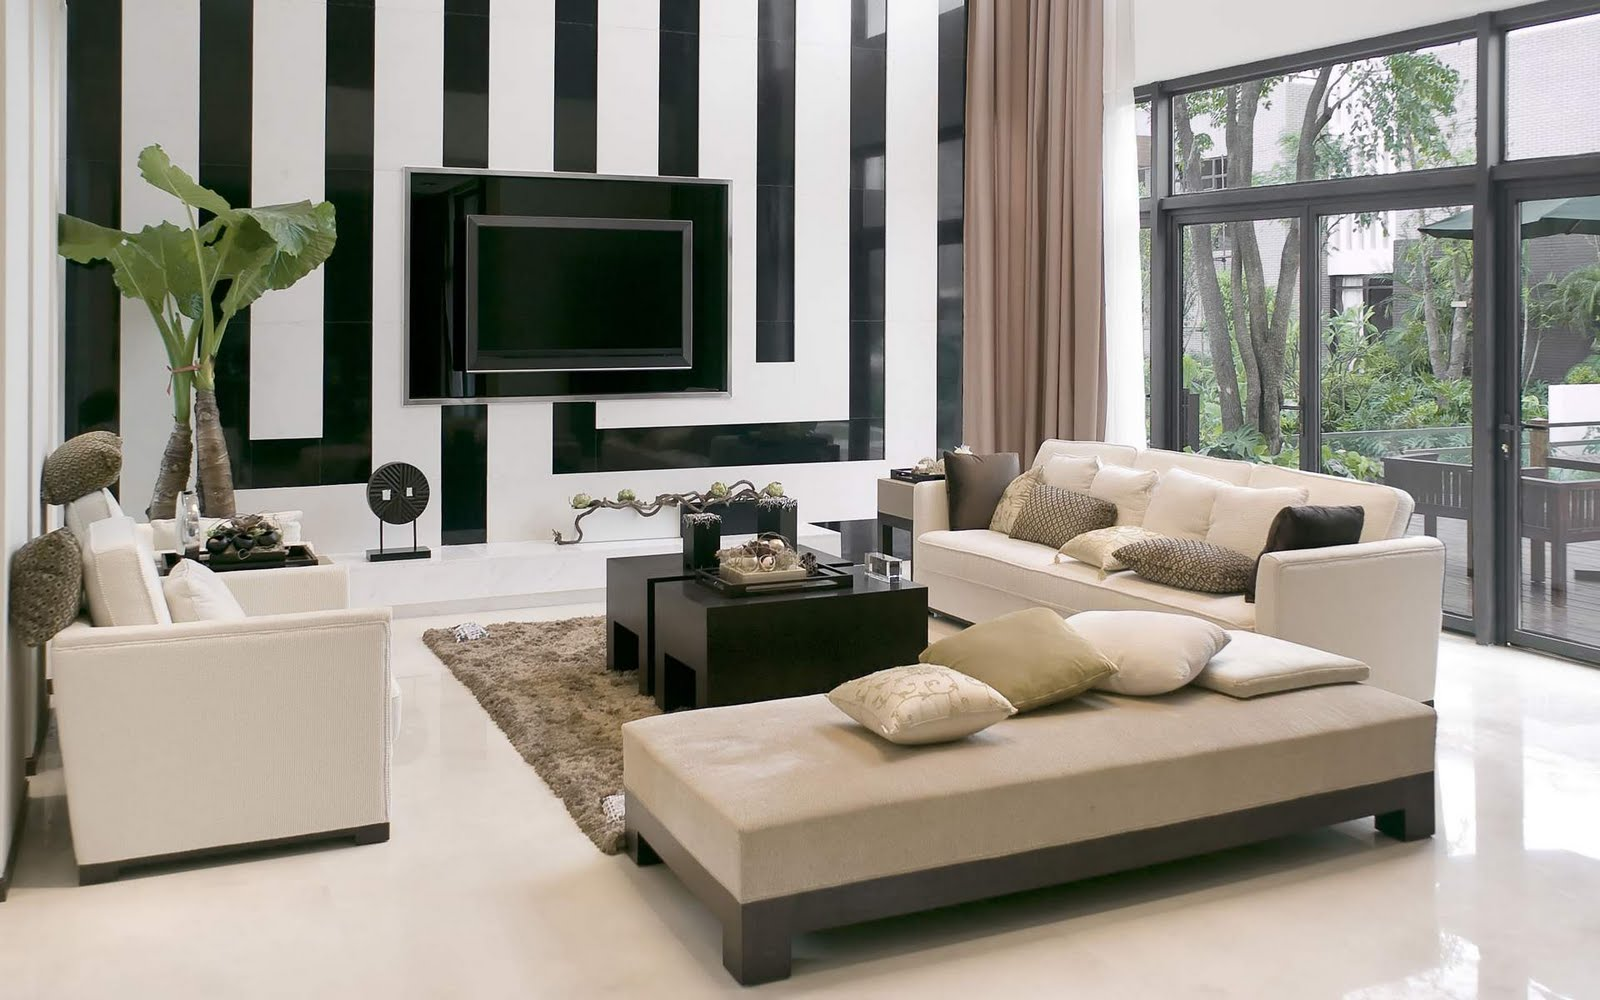 How To Design And Build Your Own Furniture